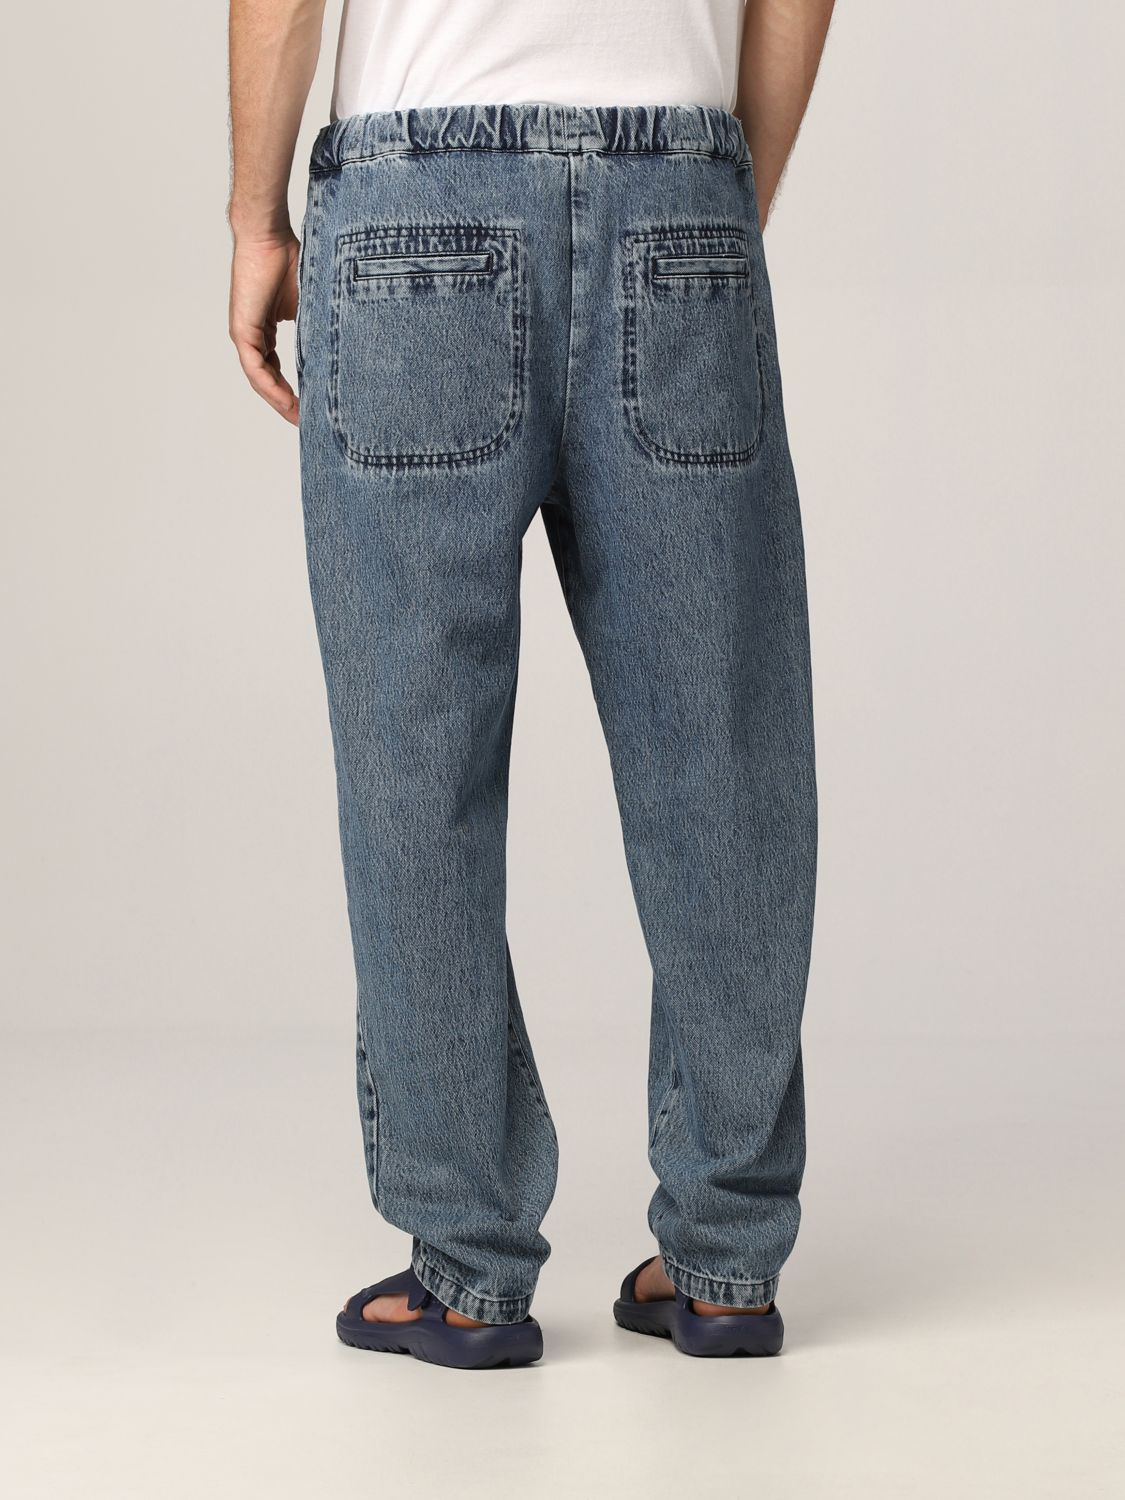 Jeans Silted: Jeans hombre Silted azul oscuro 3